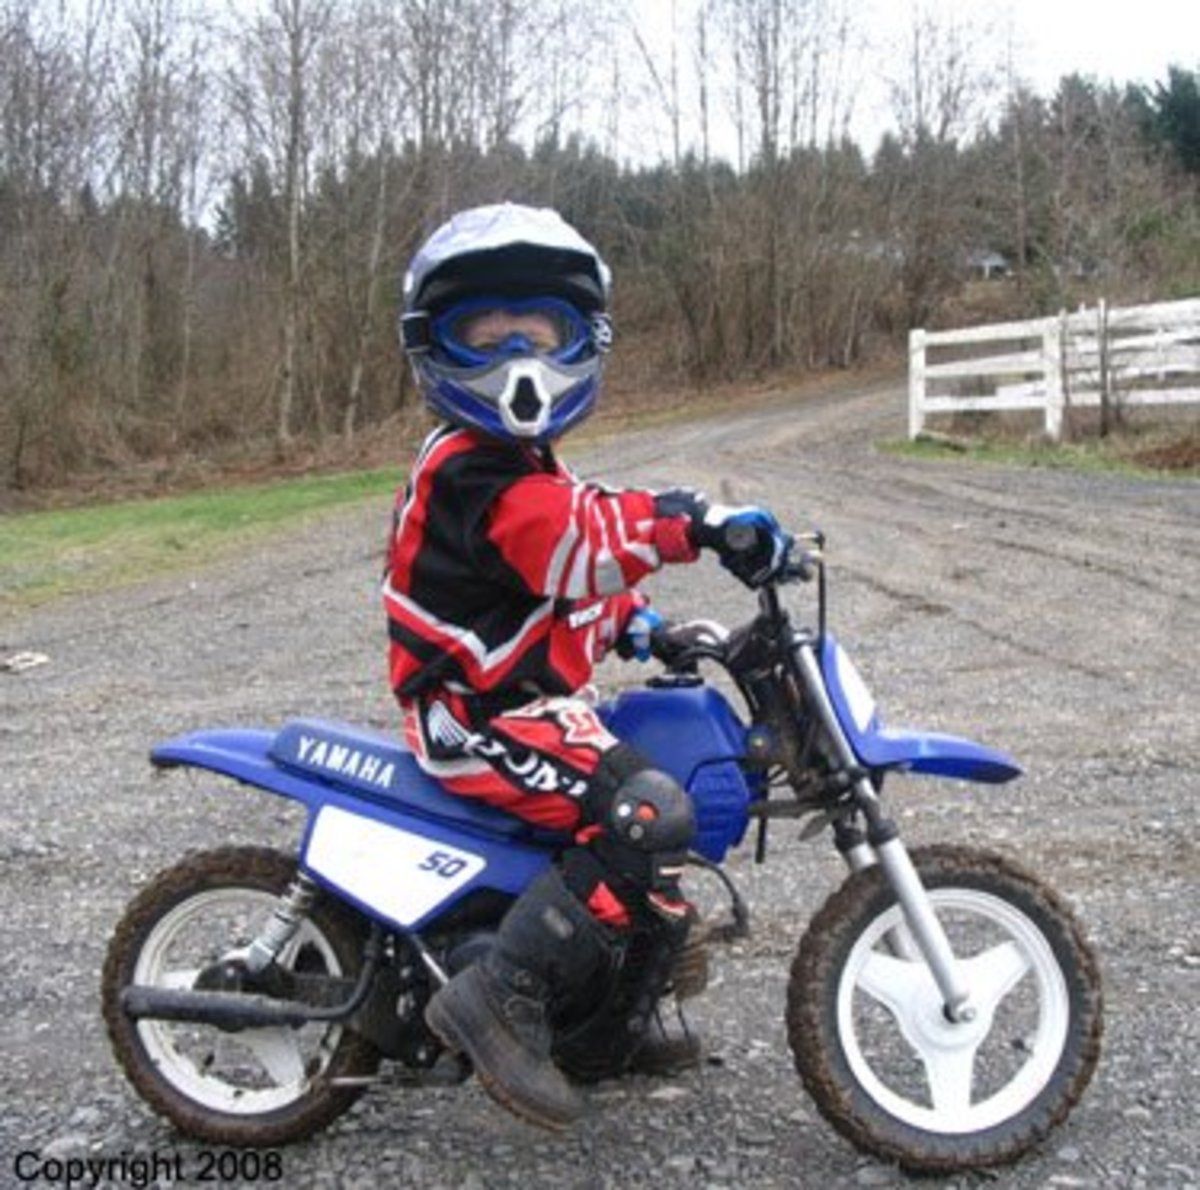 How To Get Your Kid Started Racing Dirt Bikes Axleaddict A Community Of Car Lovers Enthusiasts And Mechanics Sharing Our Auto Advice